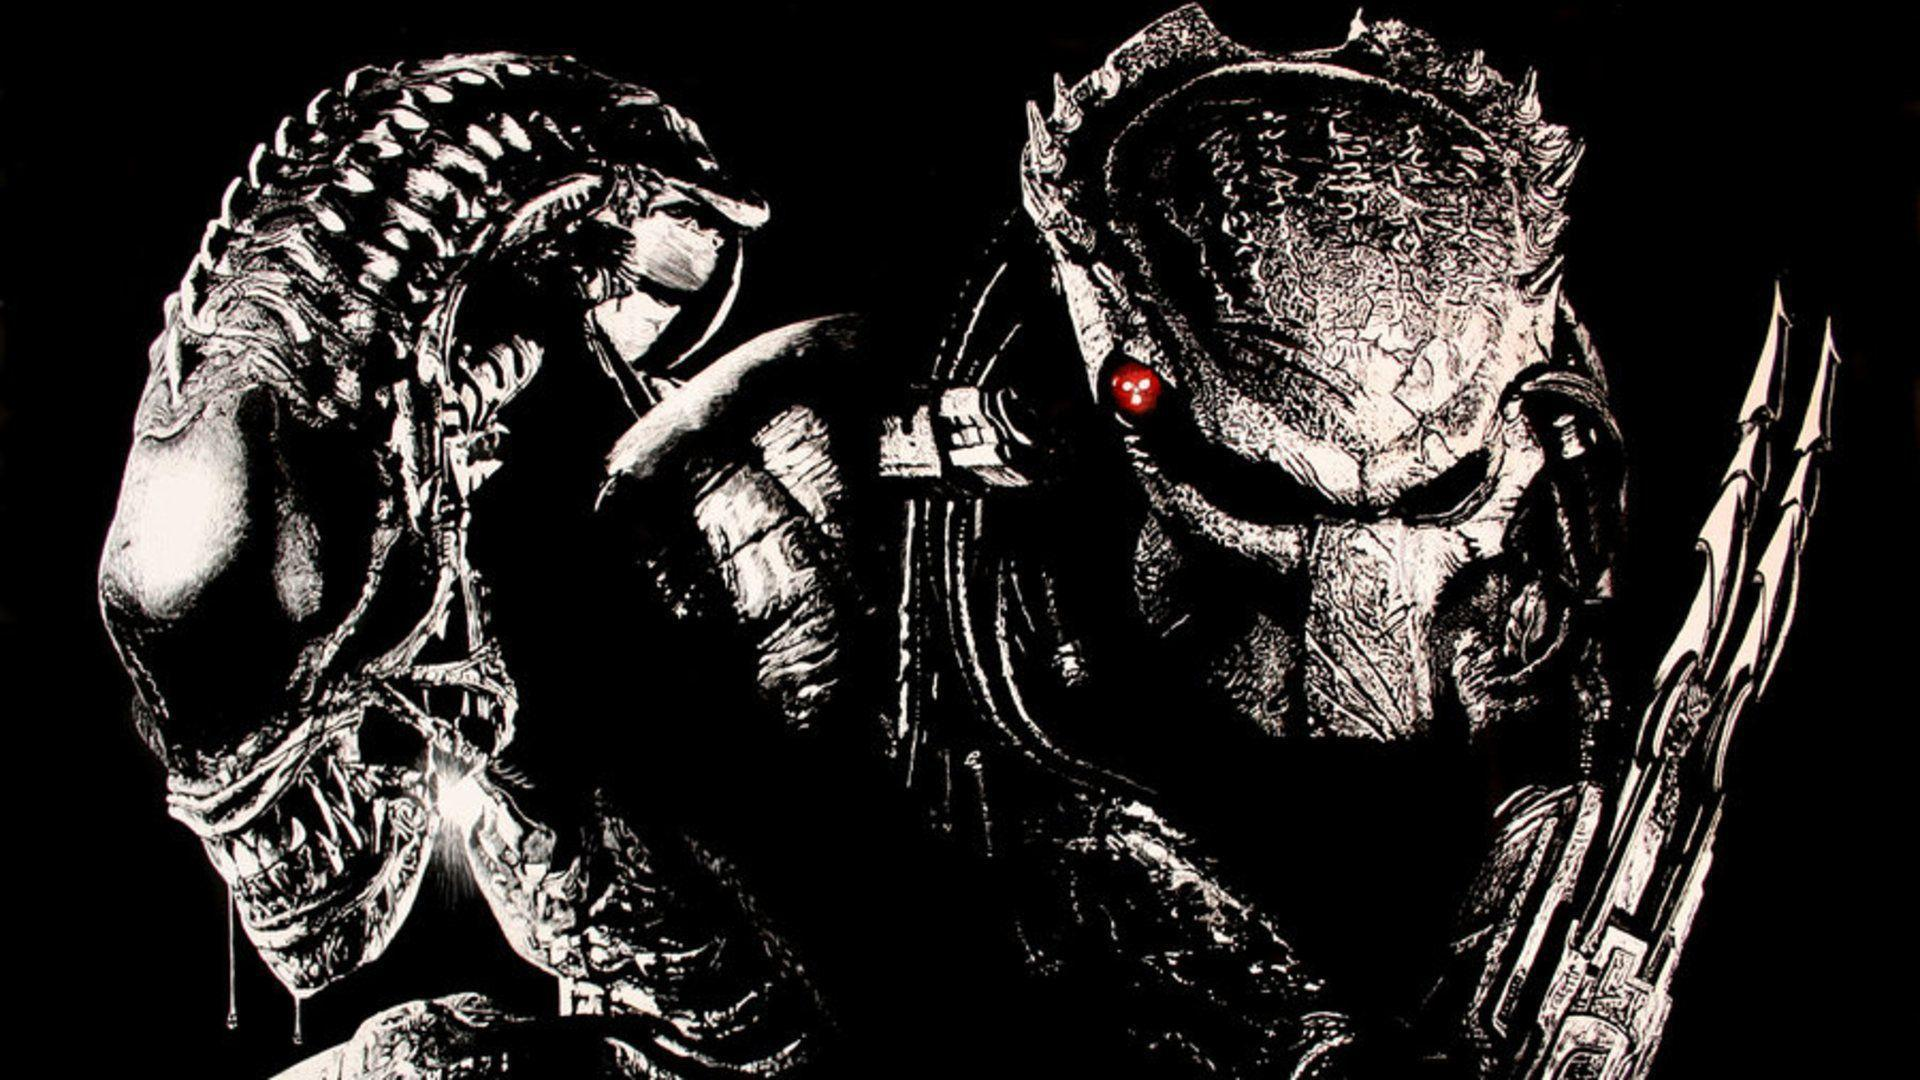 Avp Wallpapers Top Free Avp Backgrounds Wallpaperaccess